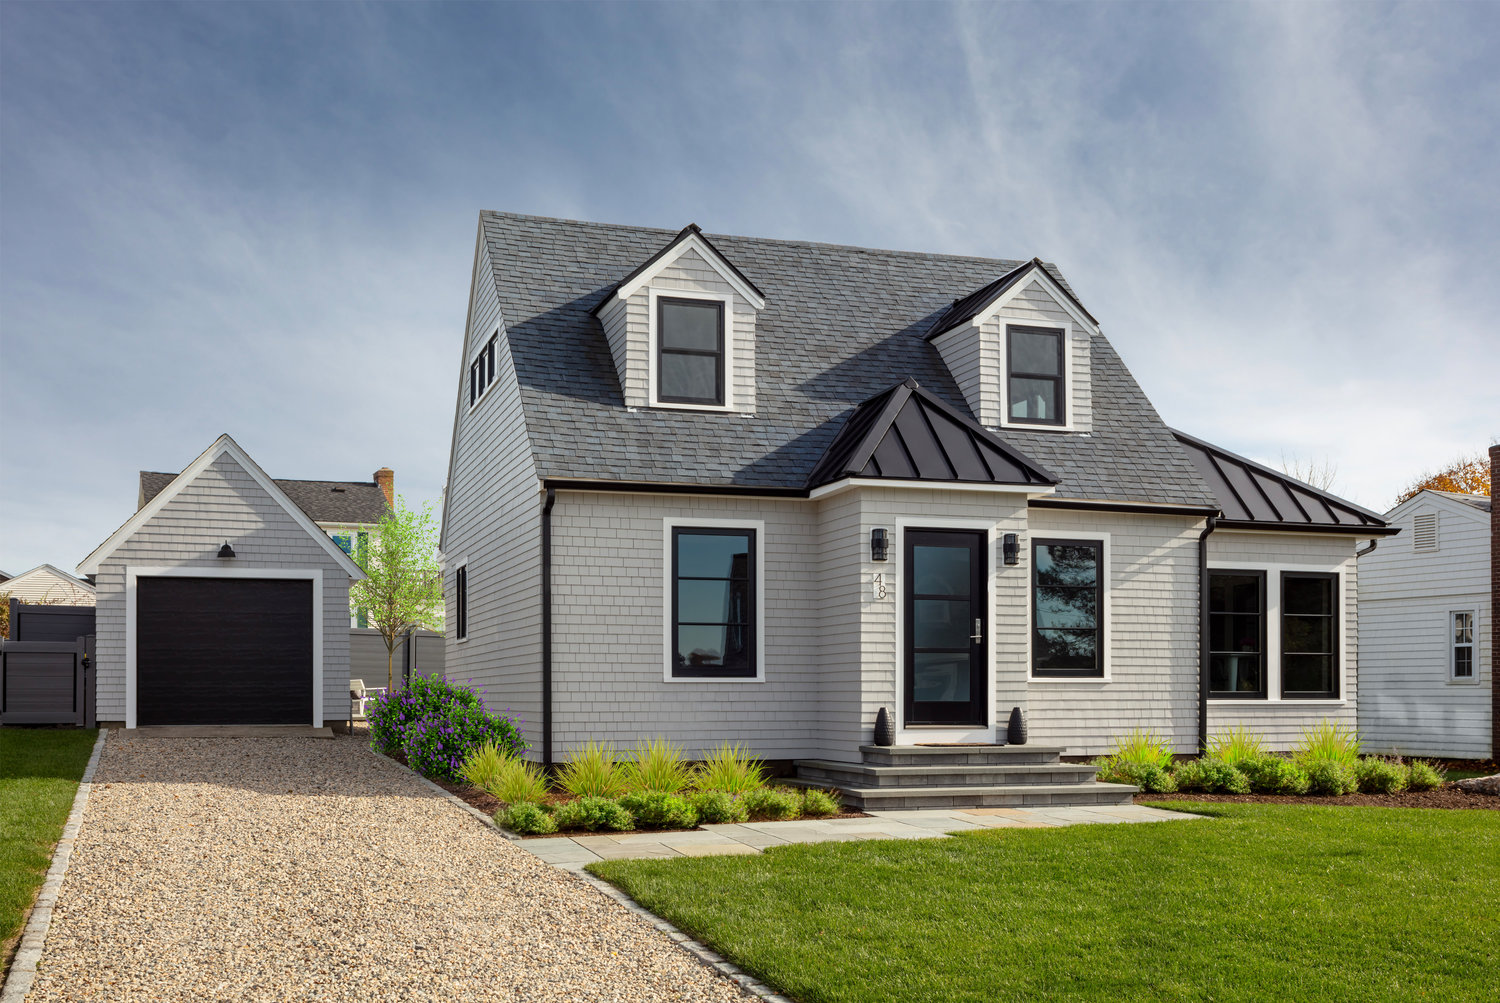 Both inside and out, a prescribed use of black elements frame neutral colors adding interest and sophistication to the humble  Cape Cod style home.